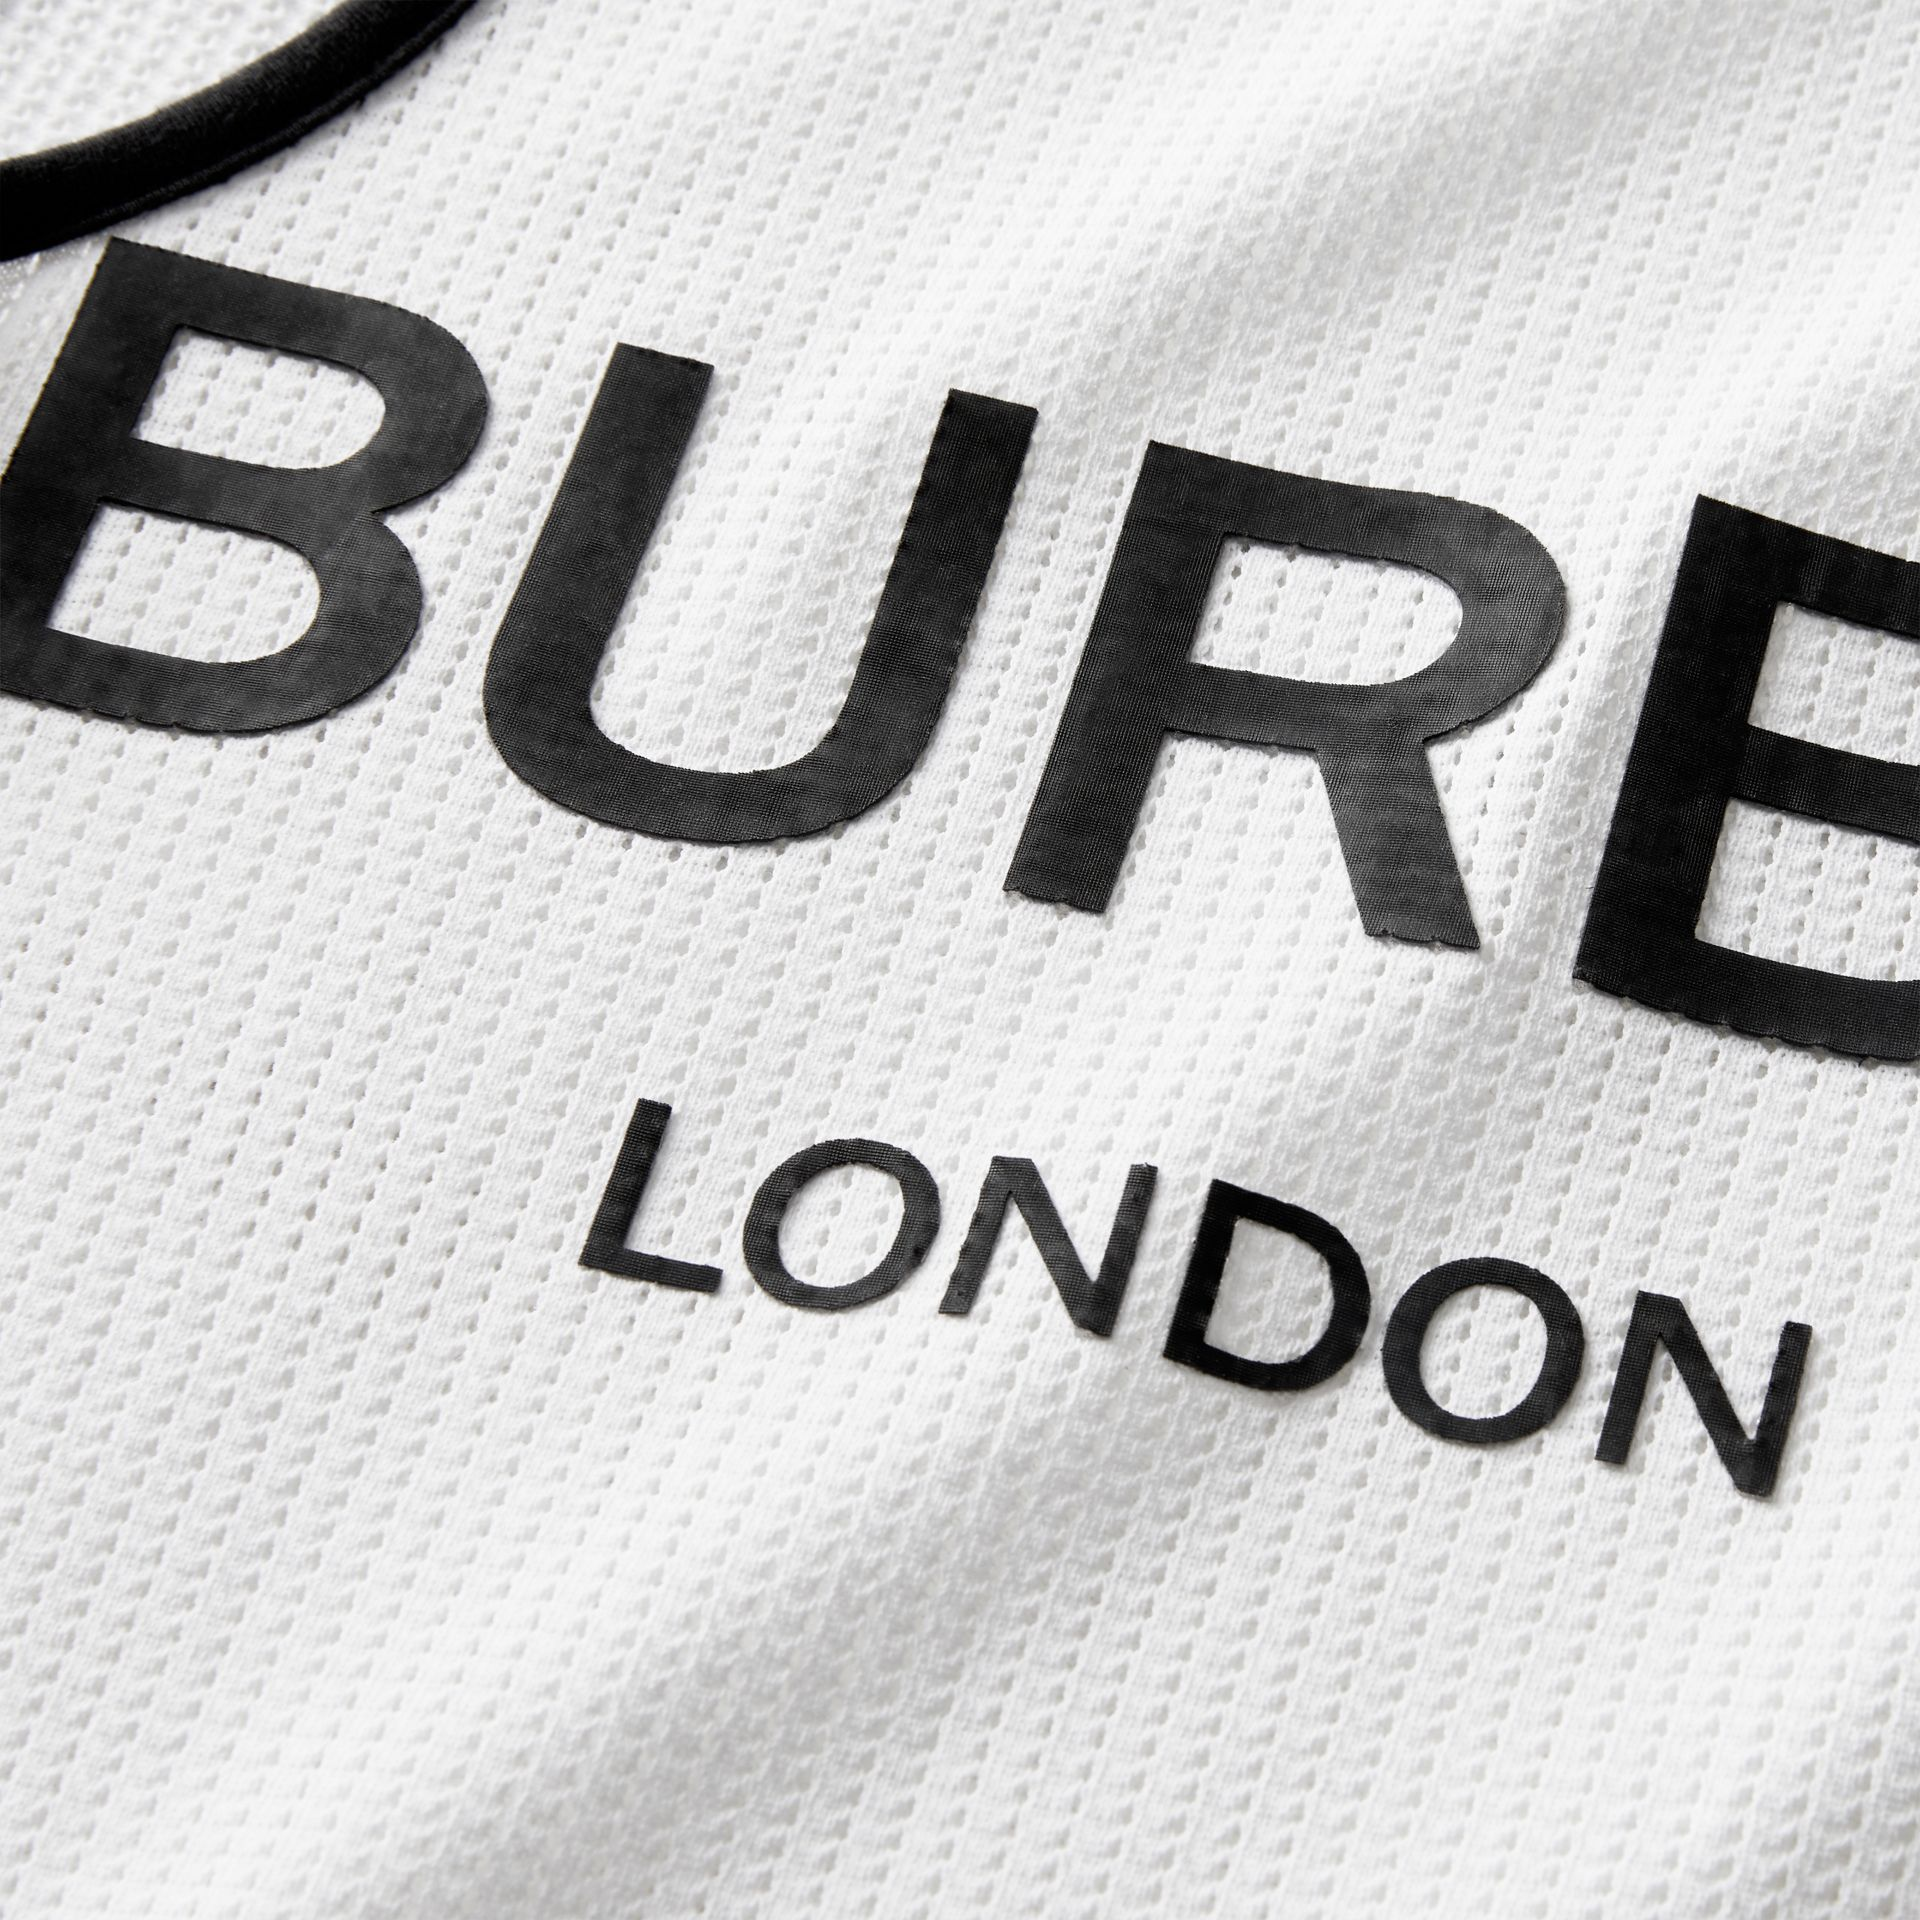 Débardeur en filet à logo imprimé (Blanc) | Burberry - photo de la galerie 1